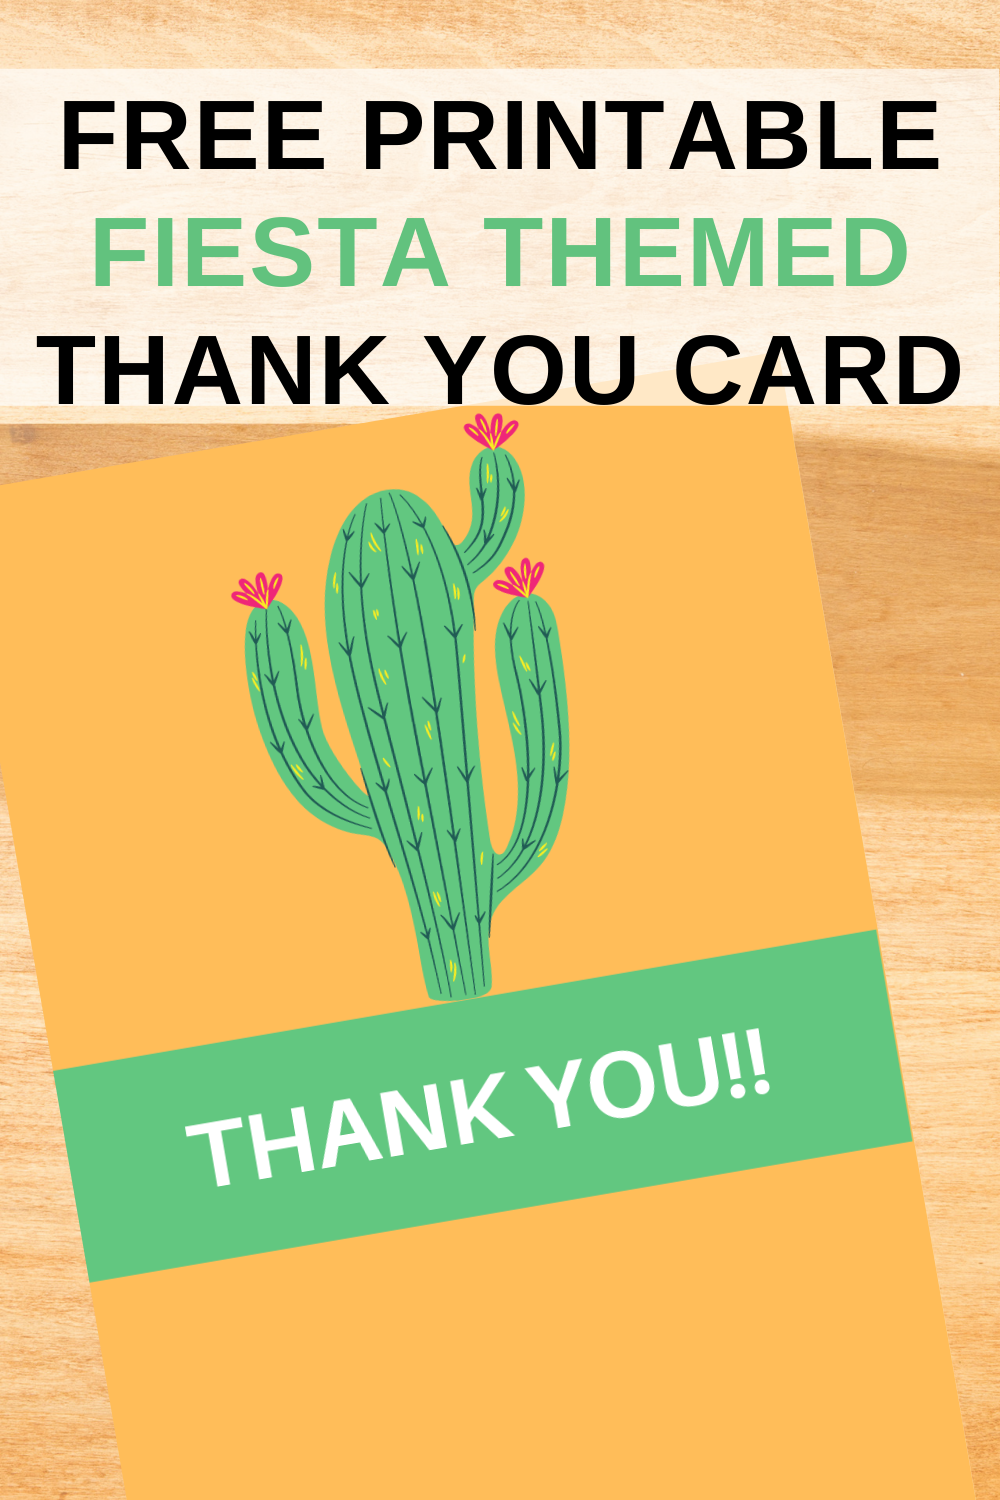 free download: fiesta themed birthday party thank you note